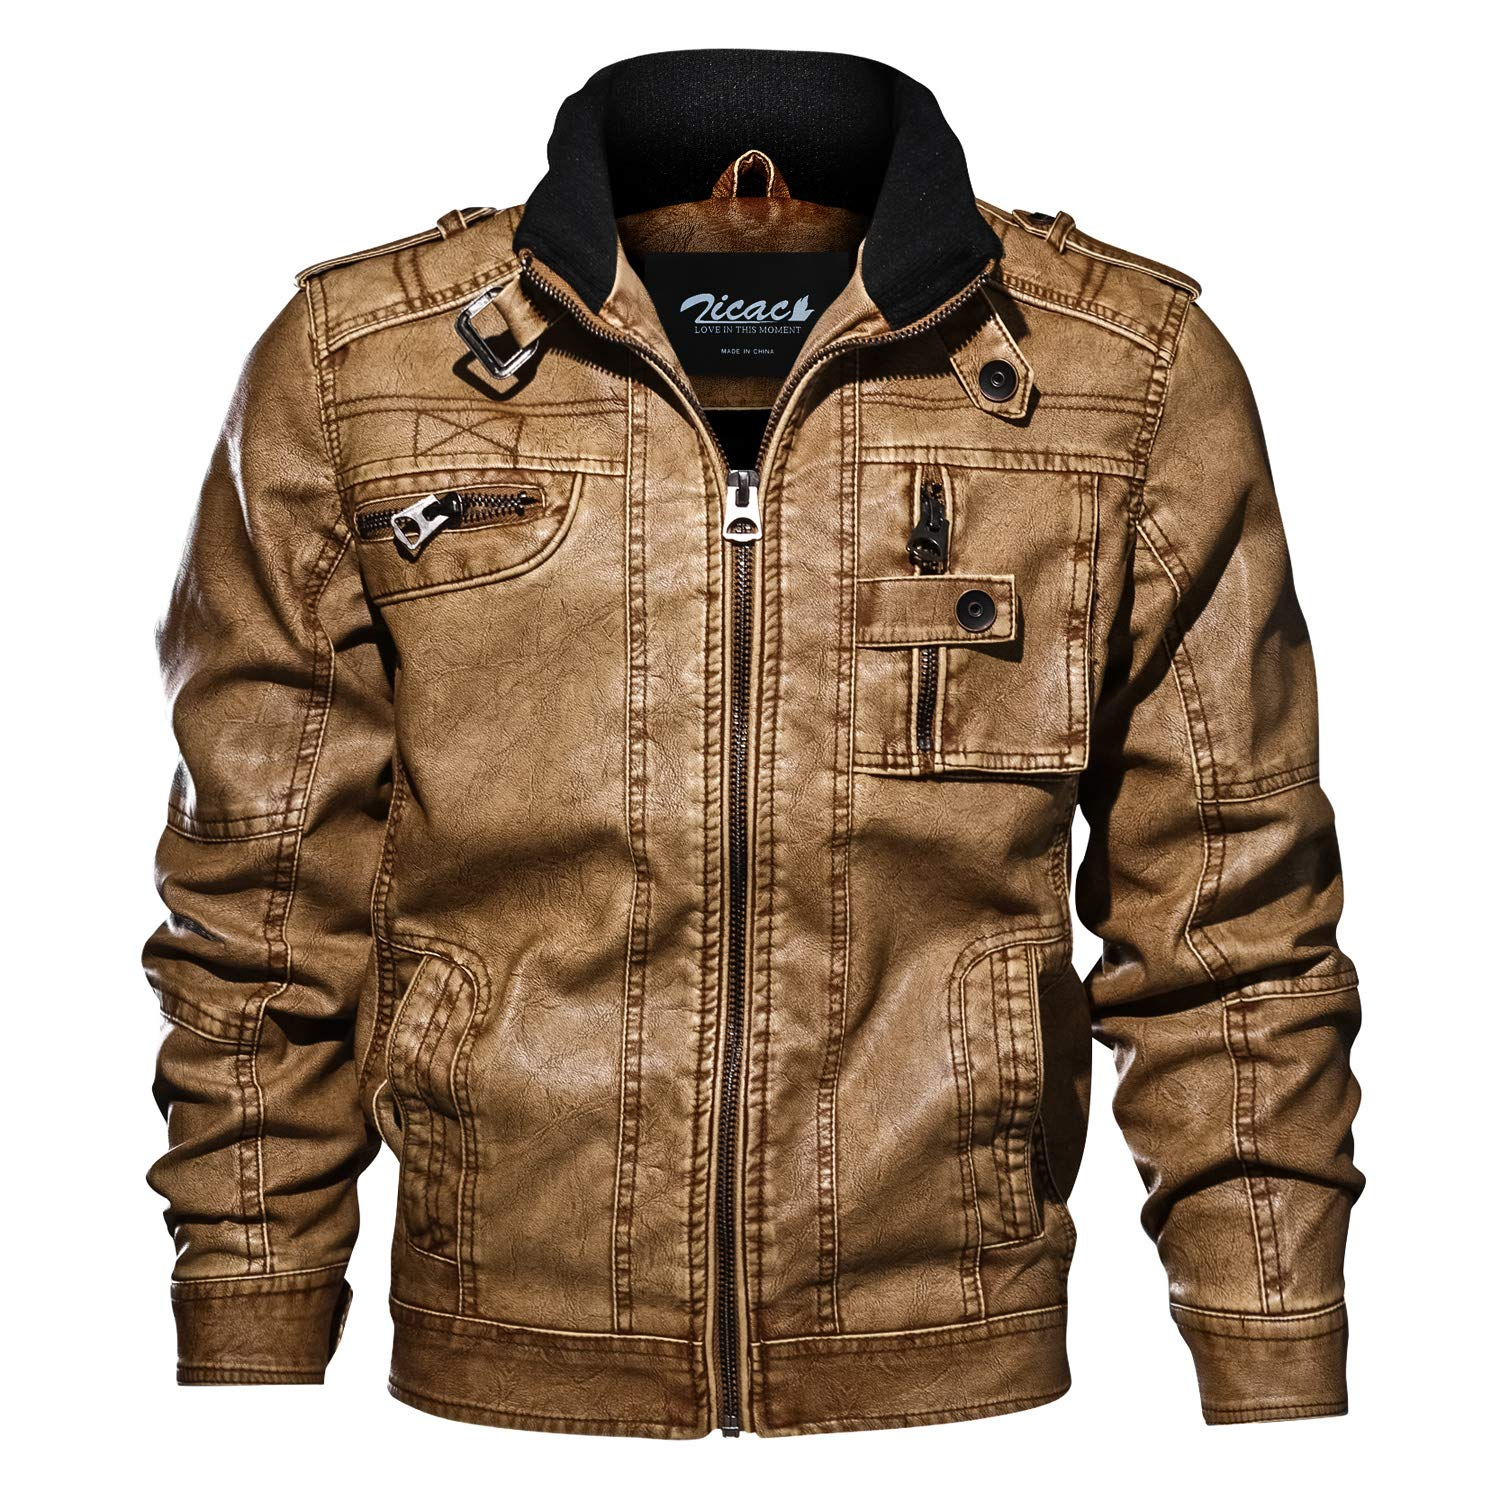 Zicac Mens' Stand Collar Pu Leather Jackets Vintage Washed Biker Jacket Motorcycle Rider Coat